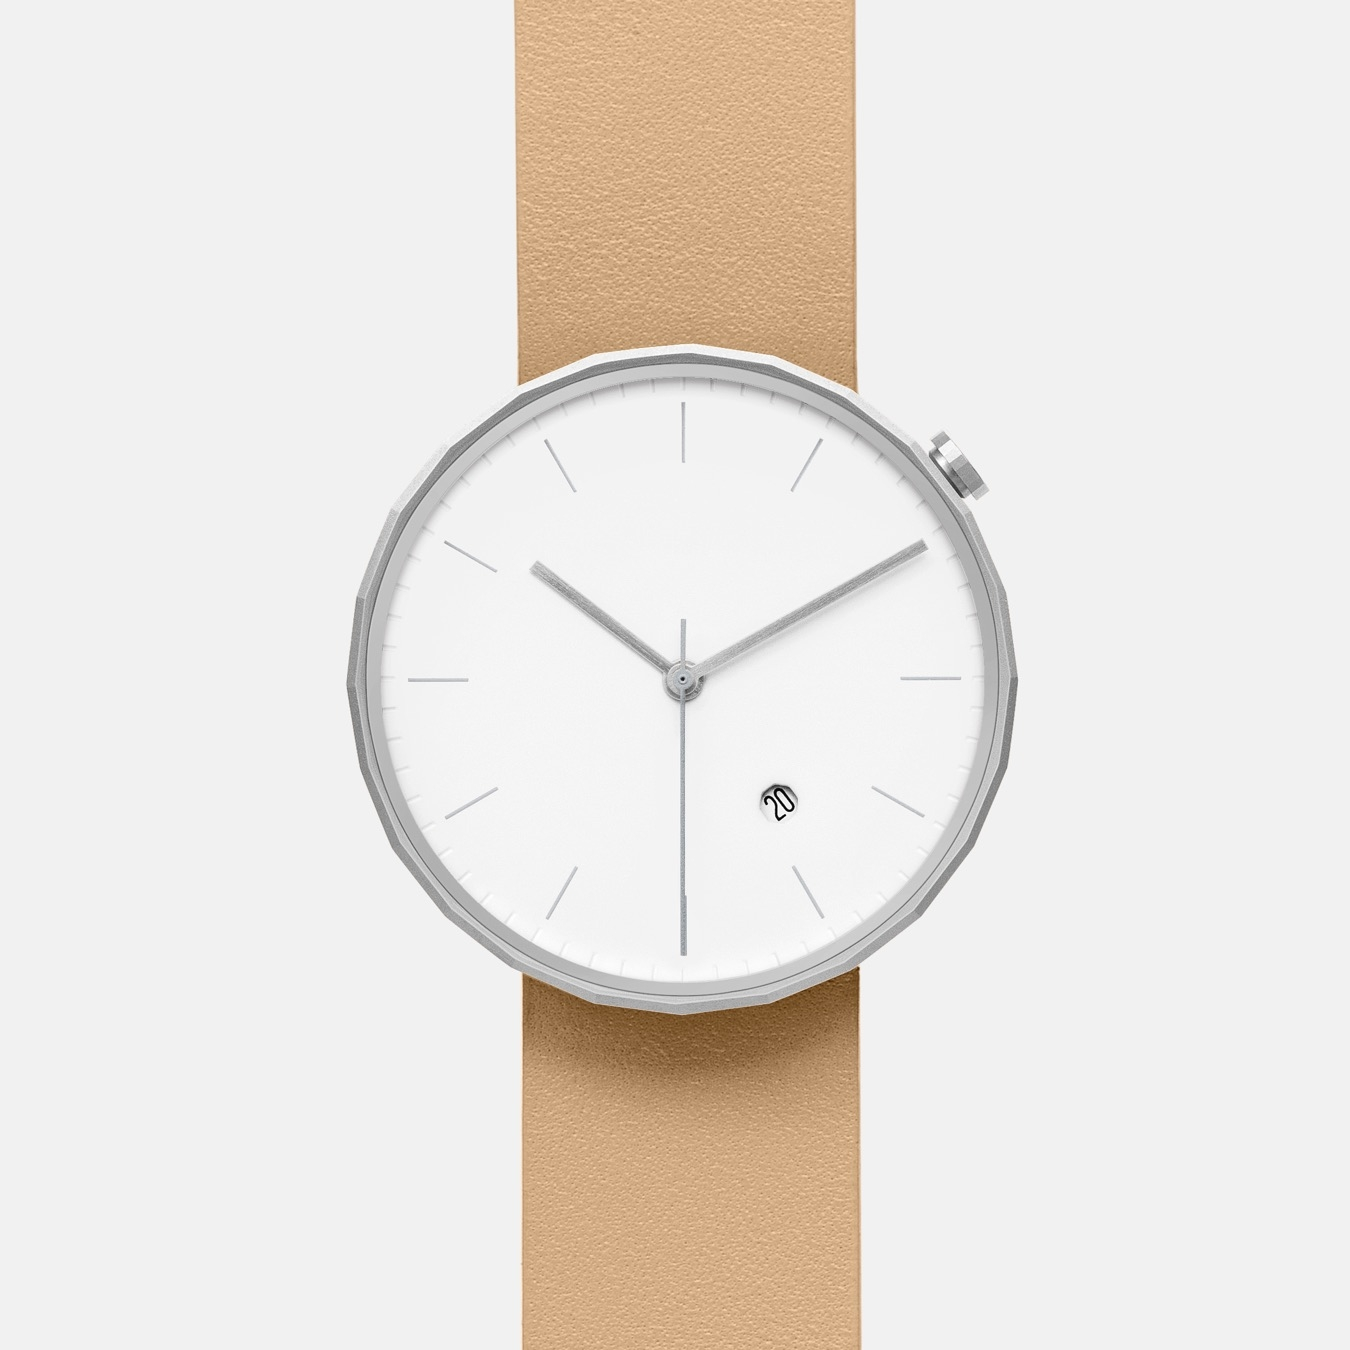 Polygon Watch 02 in Silver with Biege Strap